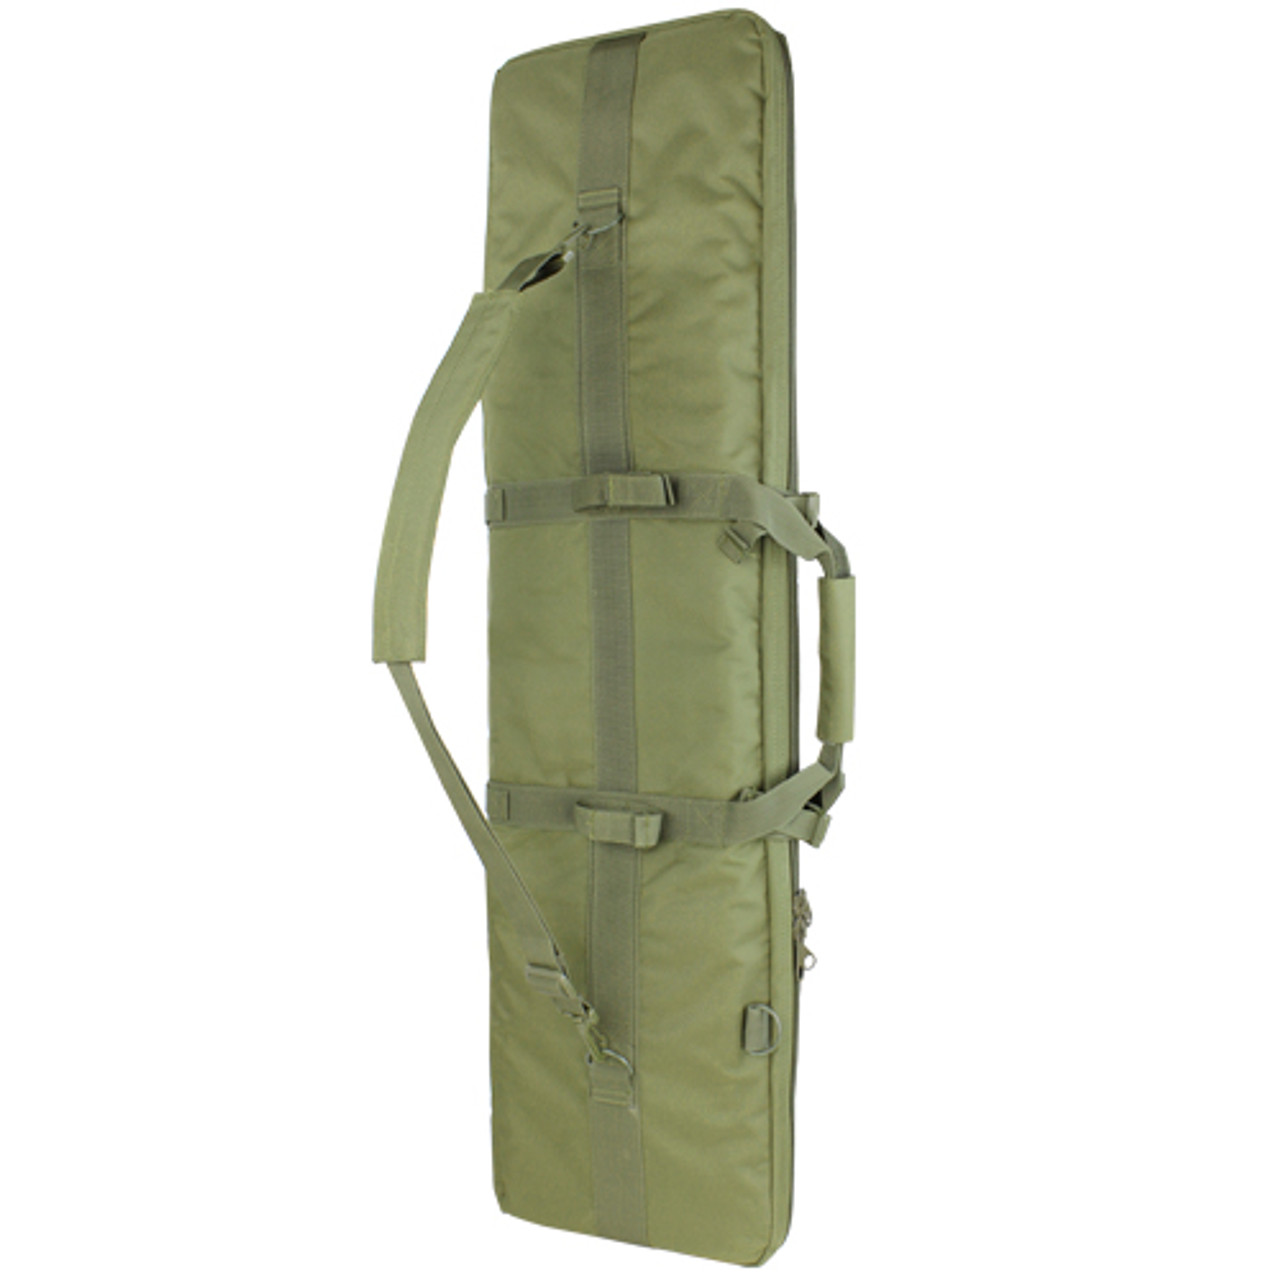 Condor - 42 Inch Rifle Case (Olive Drab) Back Strap Ready for Use